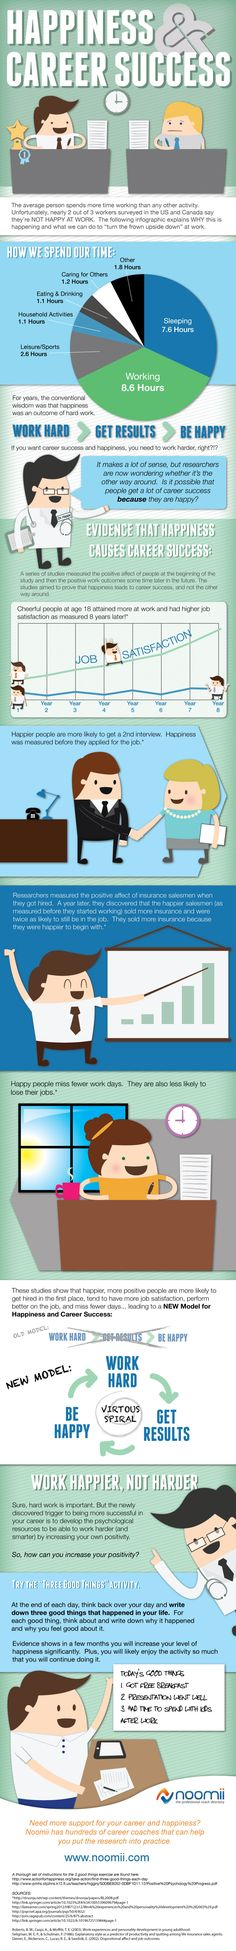 Study Shows To Reach Success Work Happier Not Harder #infographic